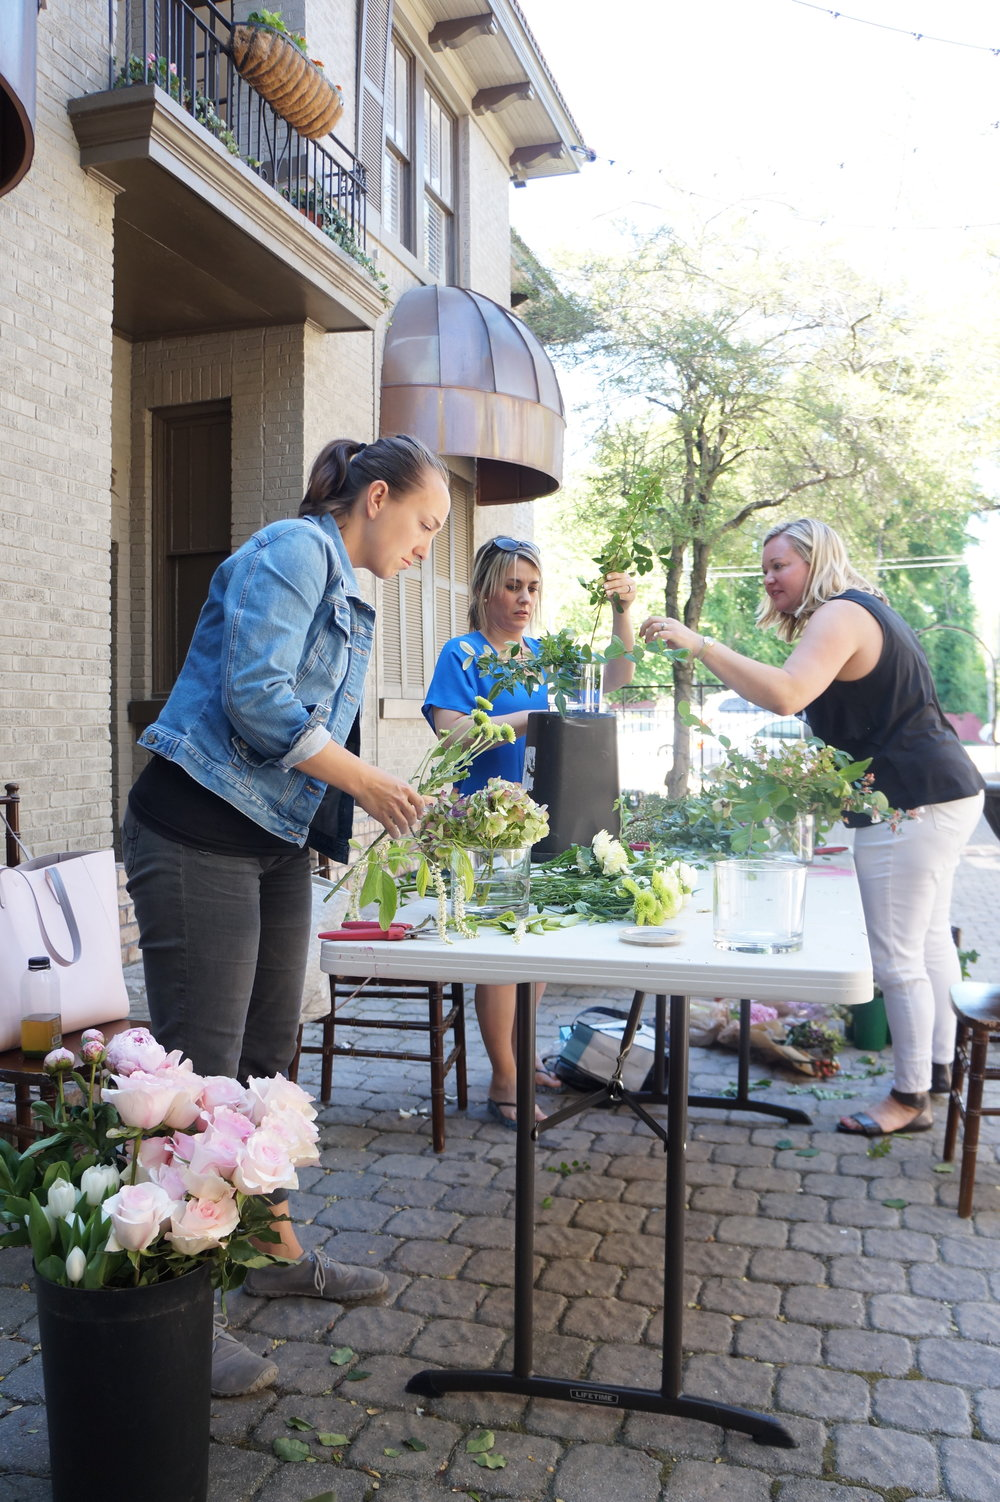 Andrea Fenise Memphis Fashion Blogger shares how to make a diy mothers day floral arrangement